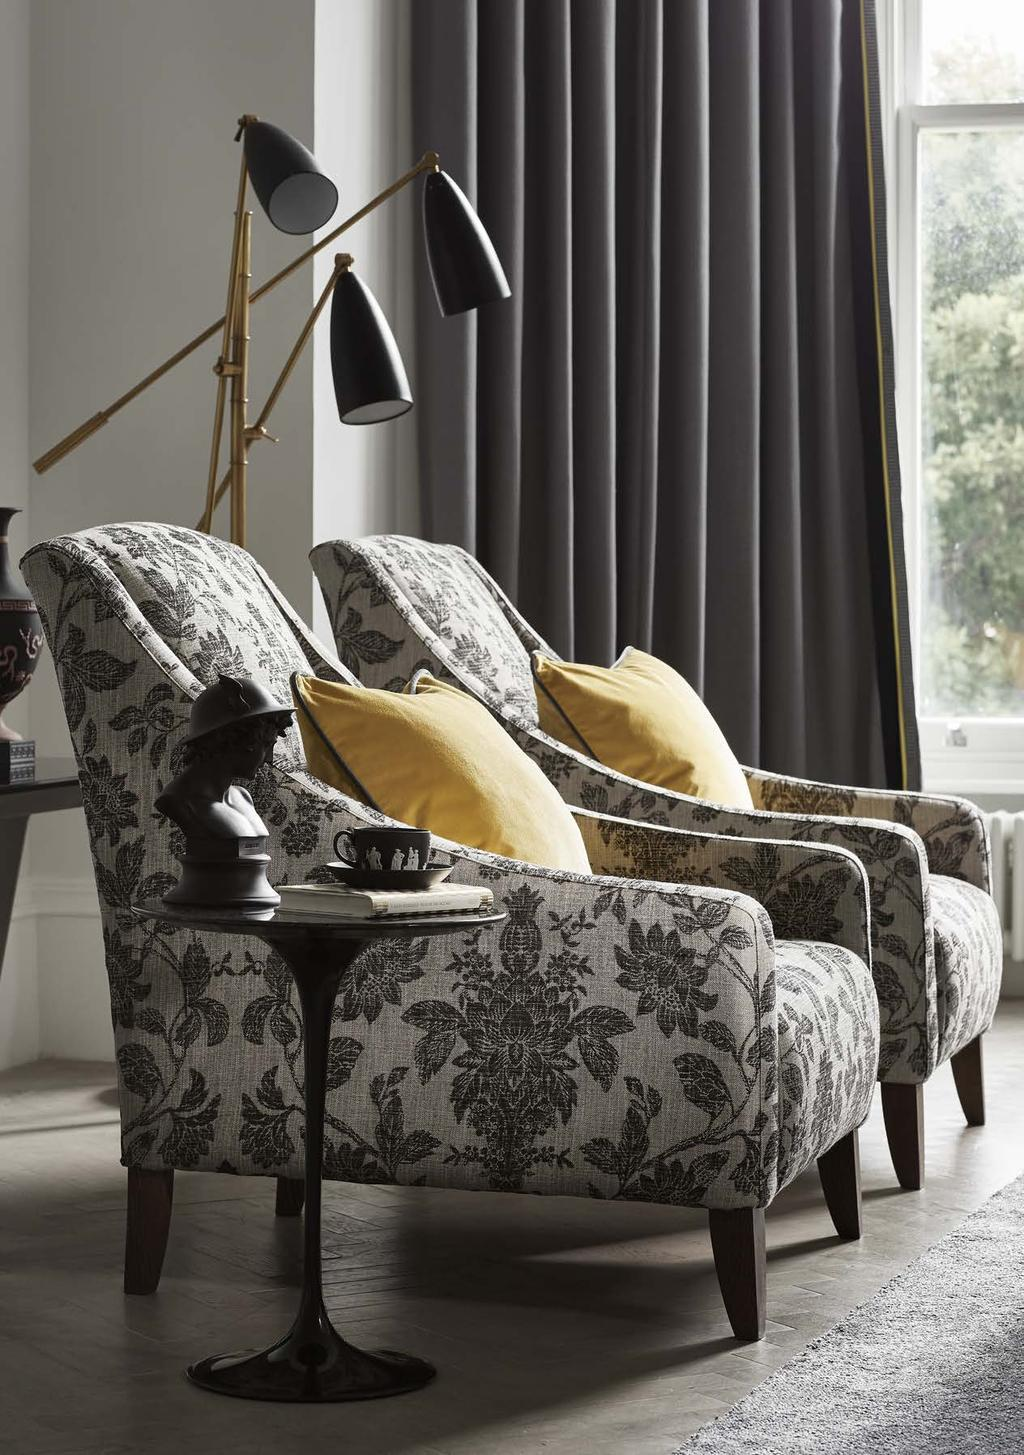 7 CUSHION: New Manor Park Col. 38 CHAIRS: Tonquin Weave Col.